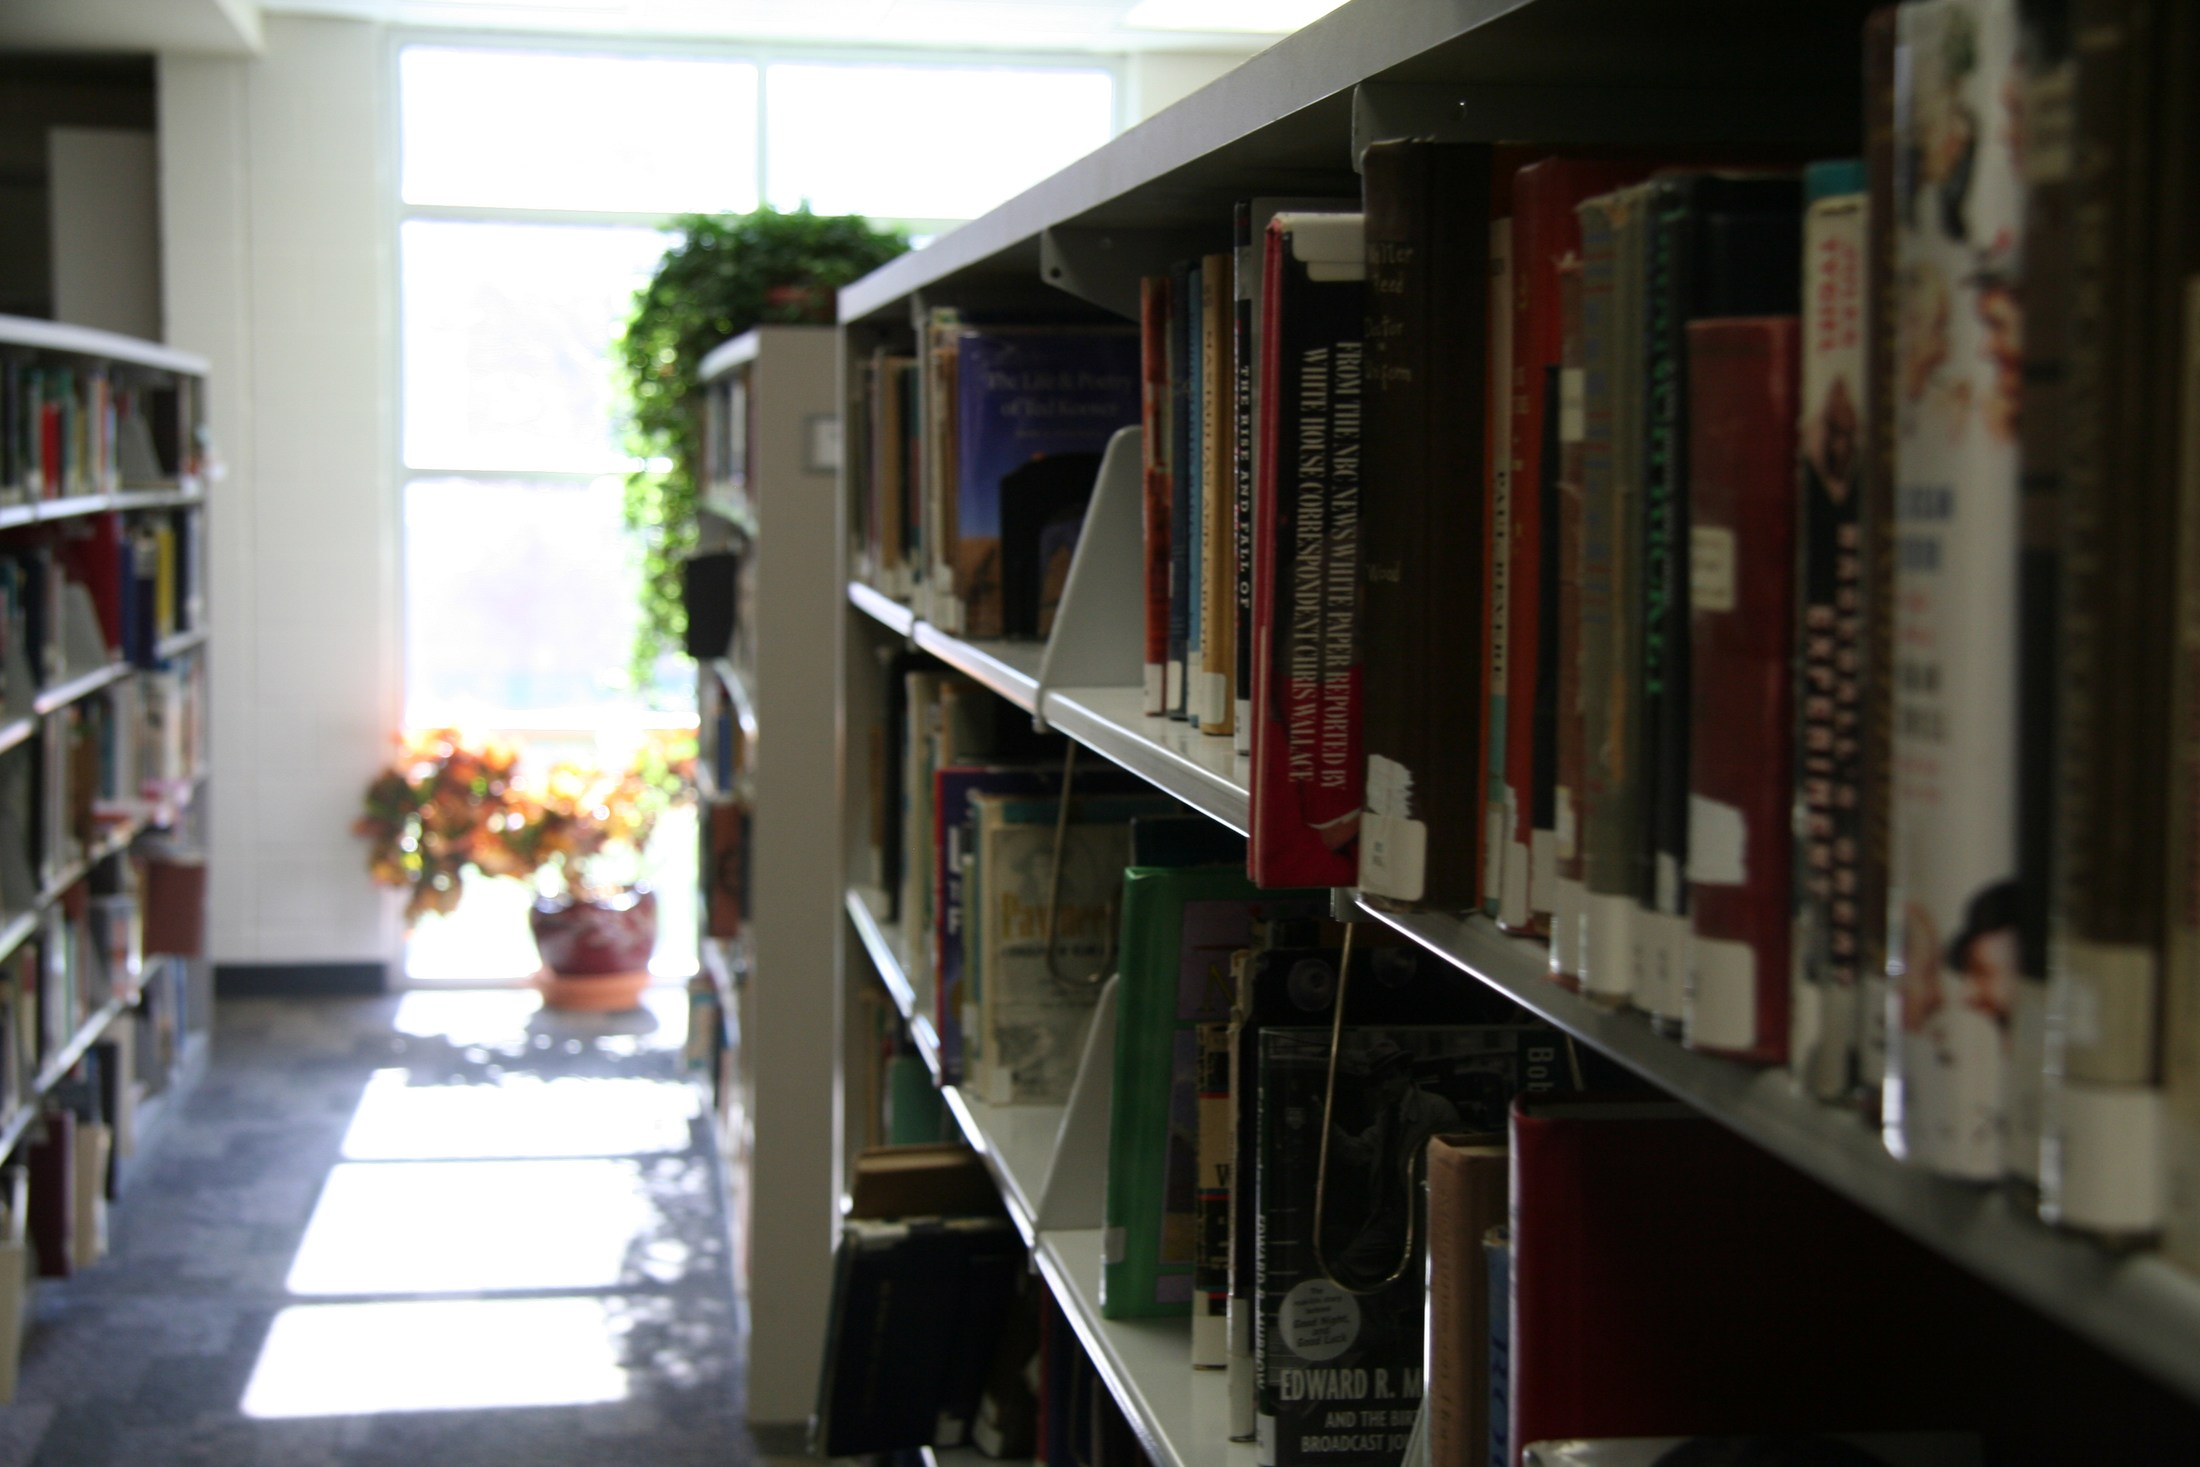 Out of focus book shelf